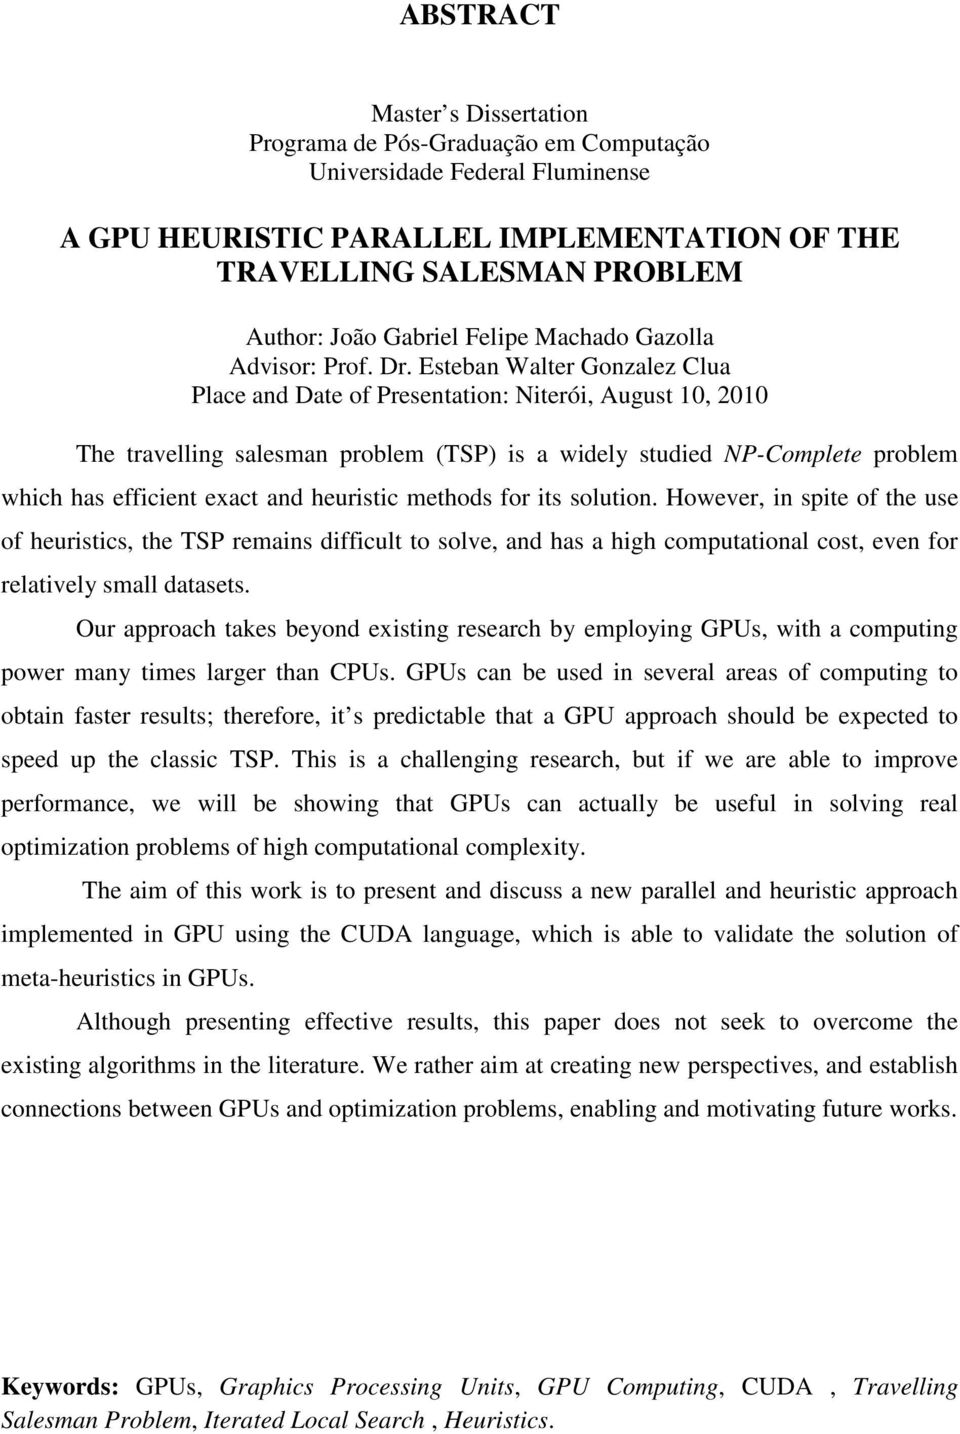 Esteban Walter Gonzalez Clua Place and Date of Presentation: Niterói, August 10, 2010 The travelling salesman problem (TSP) is a widely studied NP-Complete problem which has efficient exact and